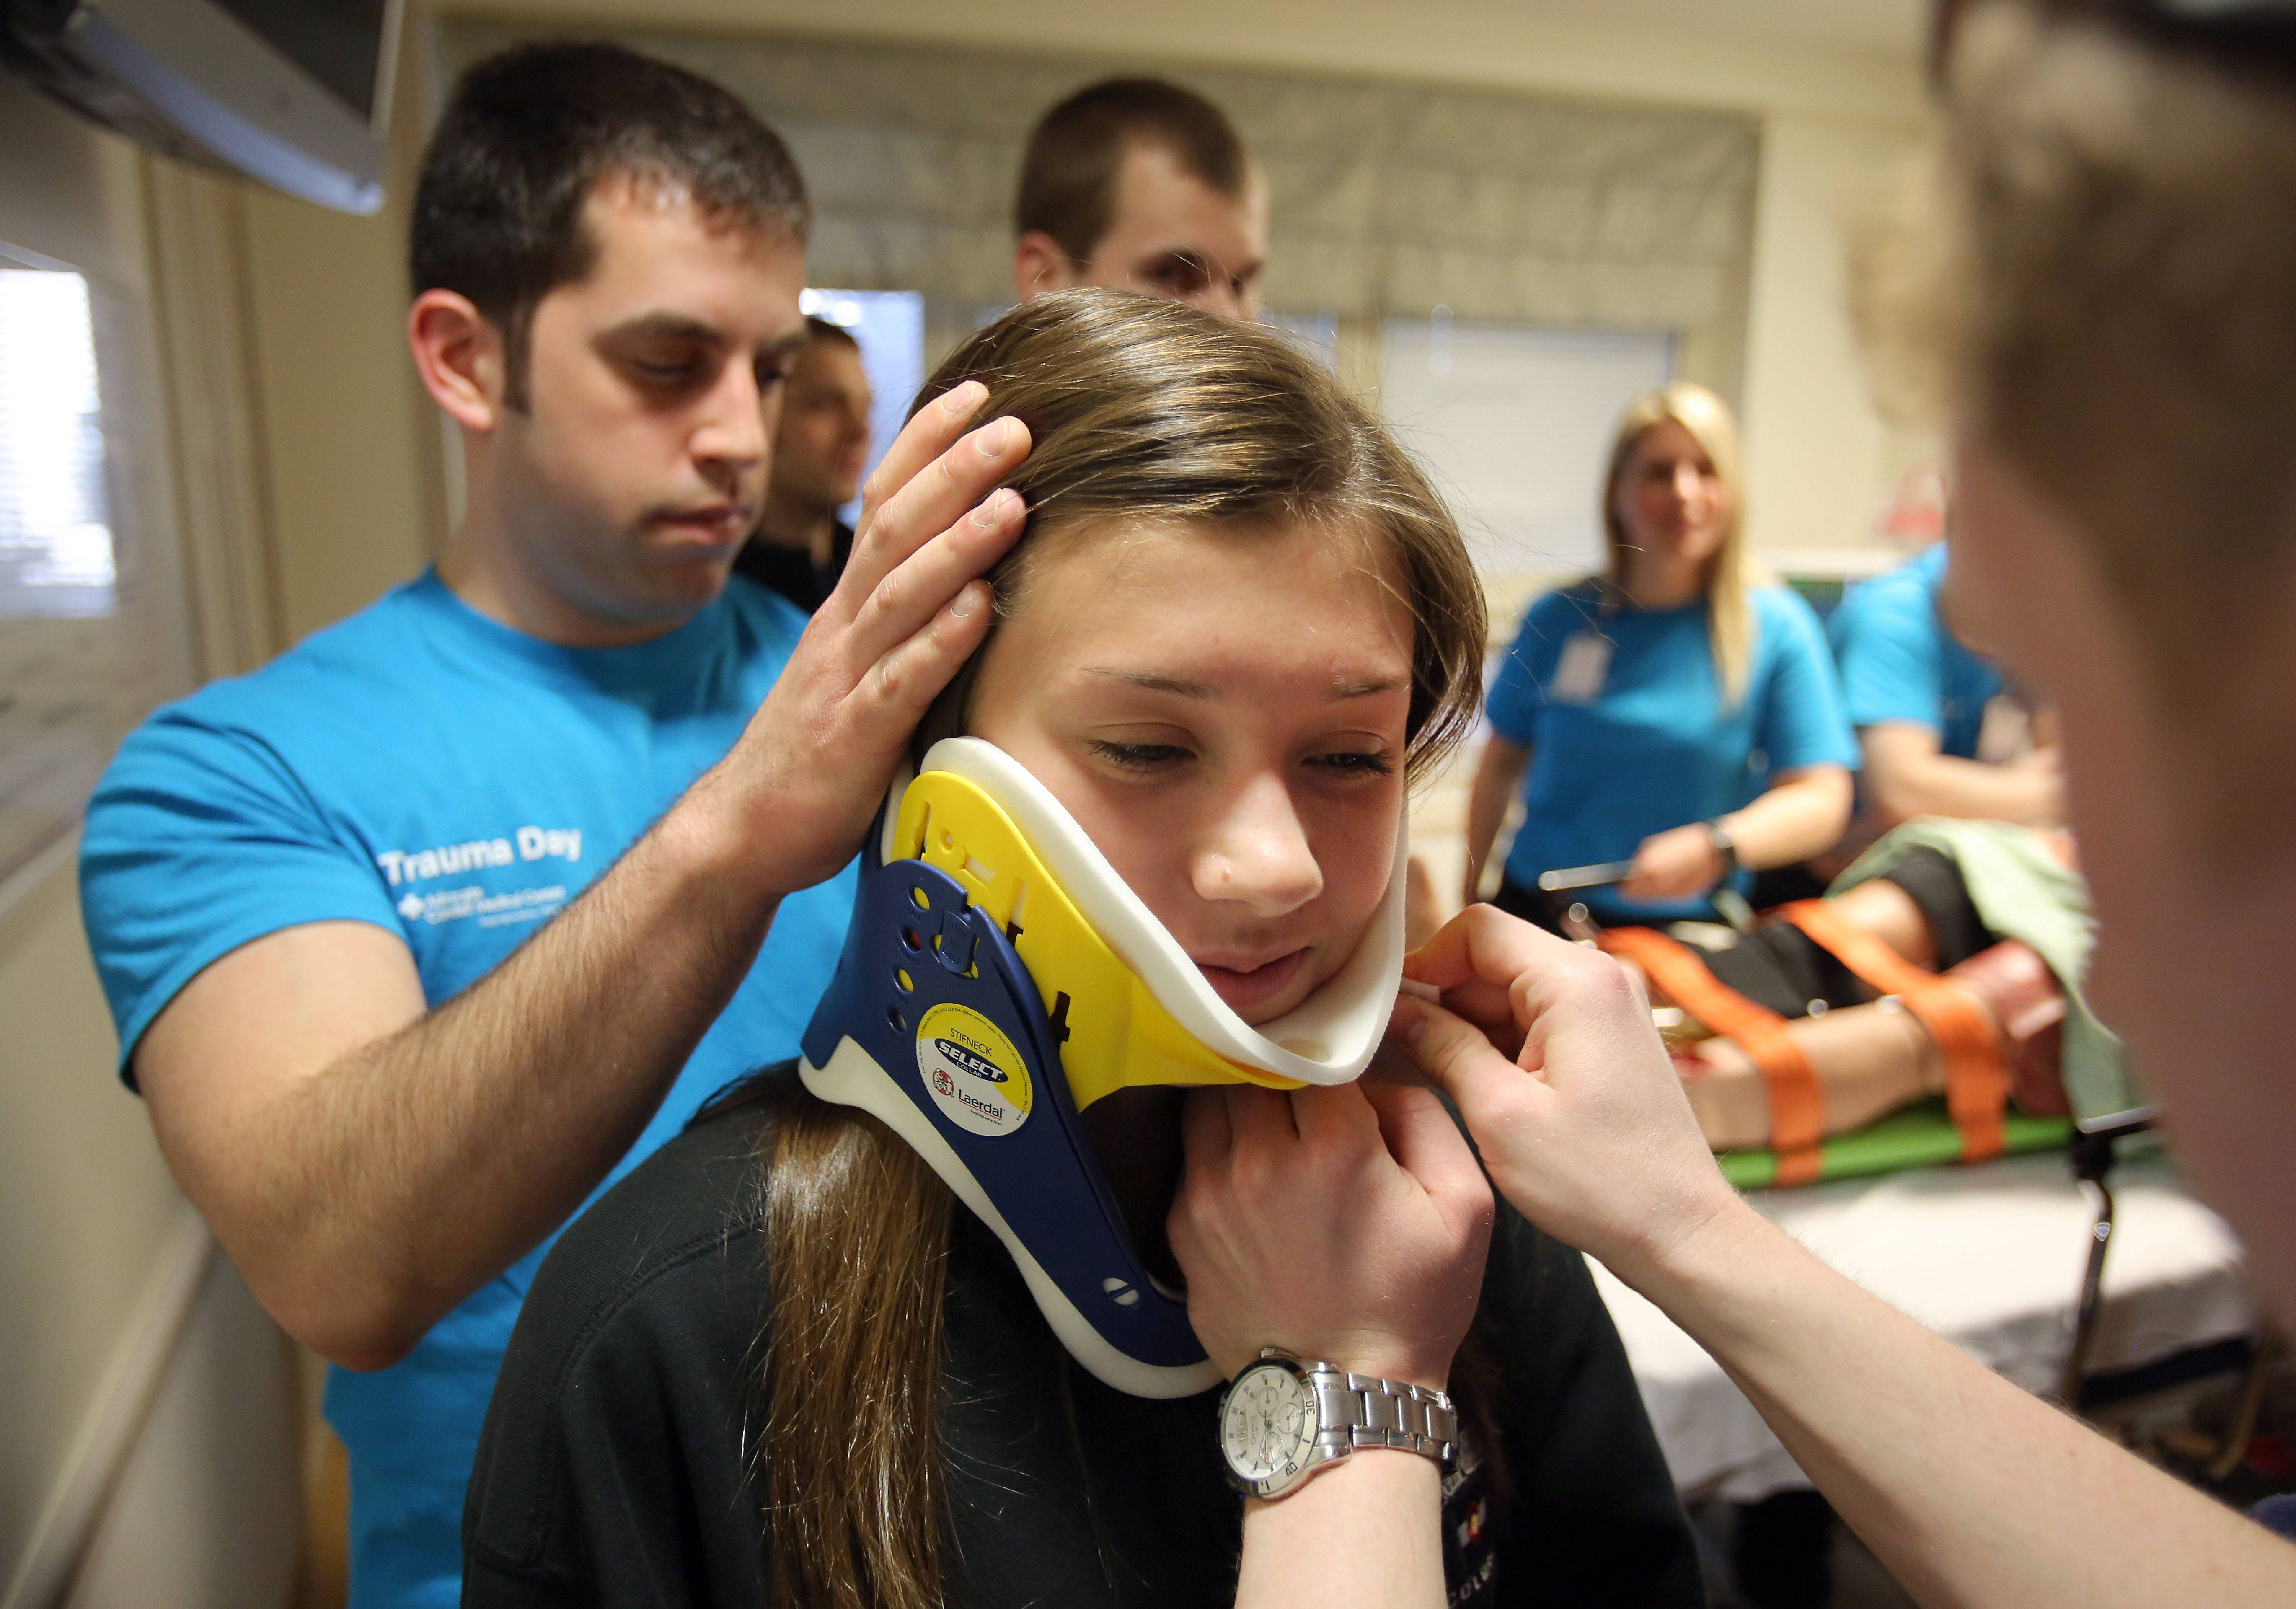 Libertyville High School Emily Elfering tries on a neck brace with the help of paramedic students Dan Cheval, left, and Kevin Learch during Trauma Day at Advocate Condell Medical Center Friday in Libertyville